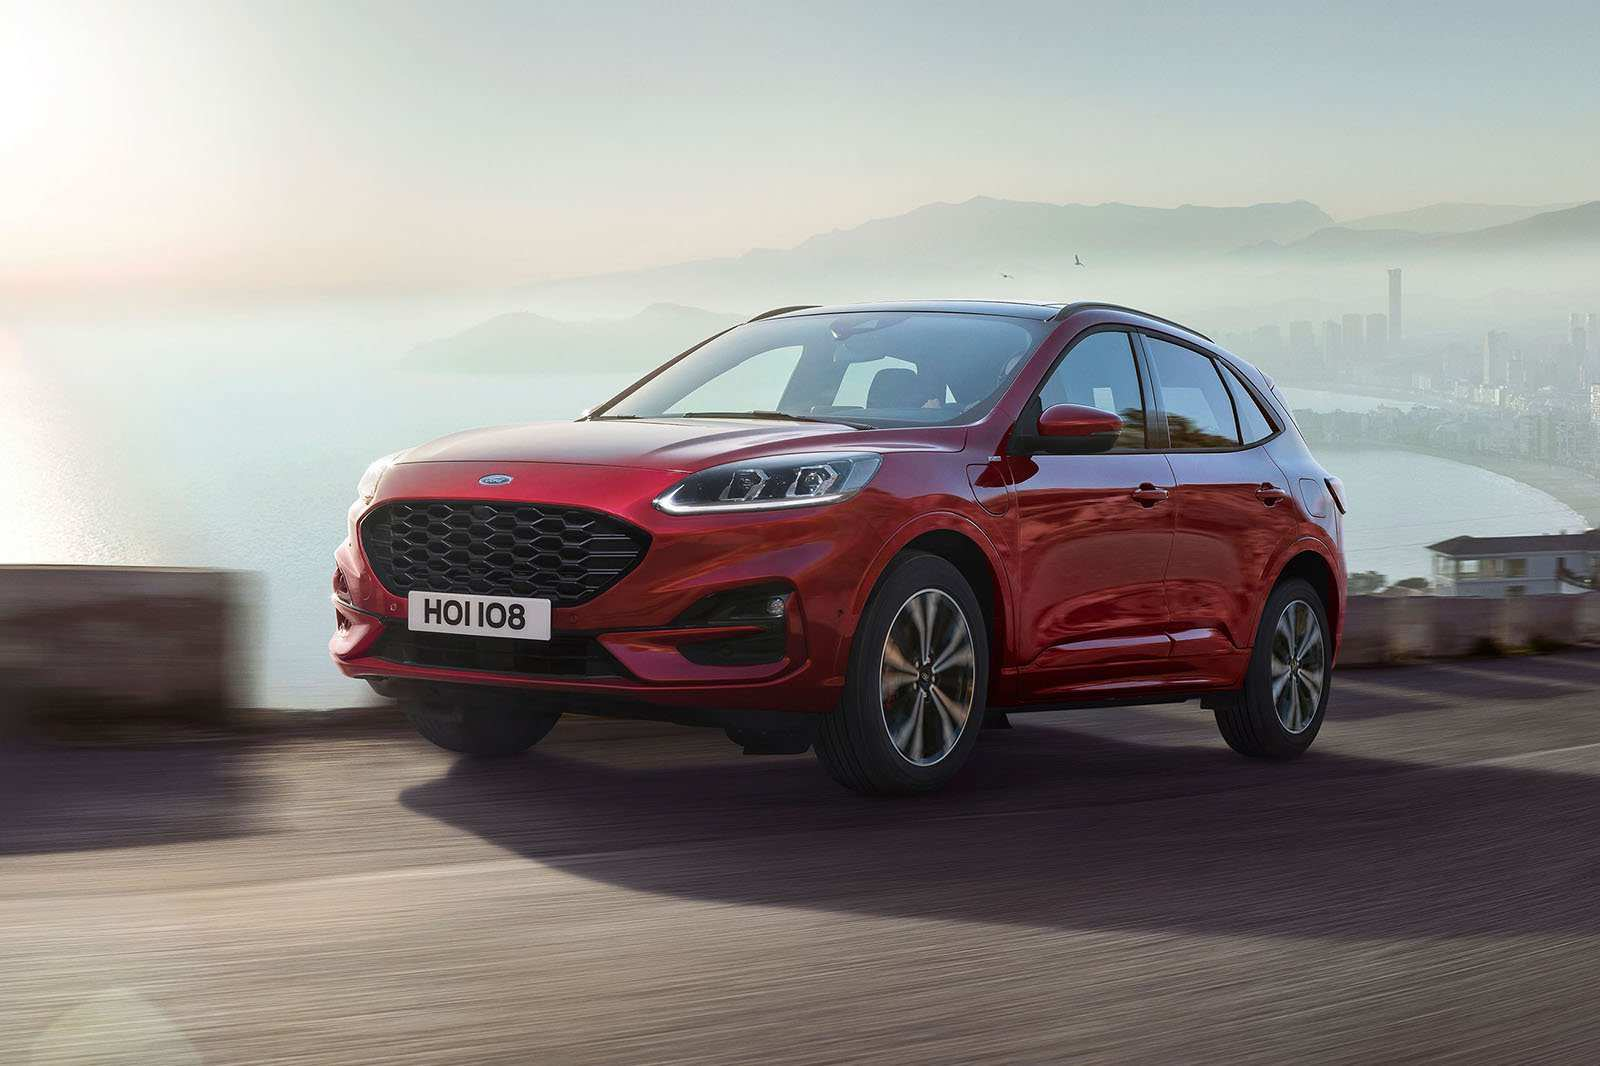 81 Concept of Ford Kuga 2020 Model for Ford Kuga 2020